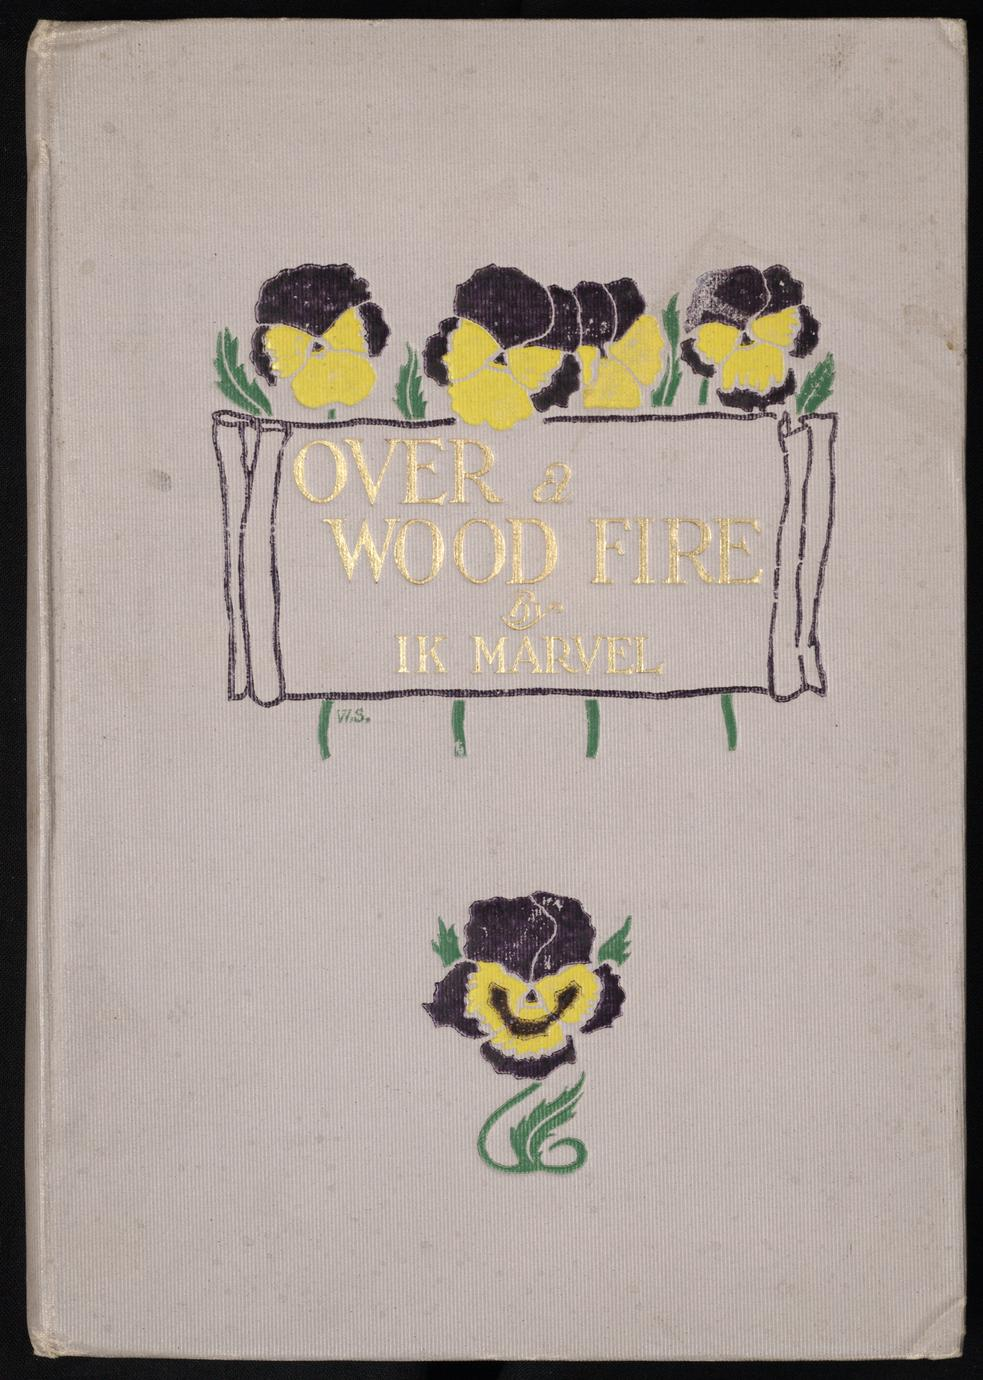 Over a wood fire : from Reveries of a bachelor